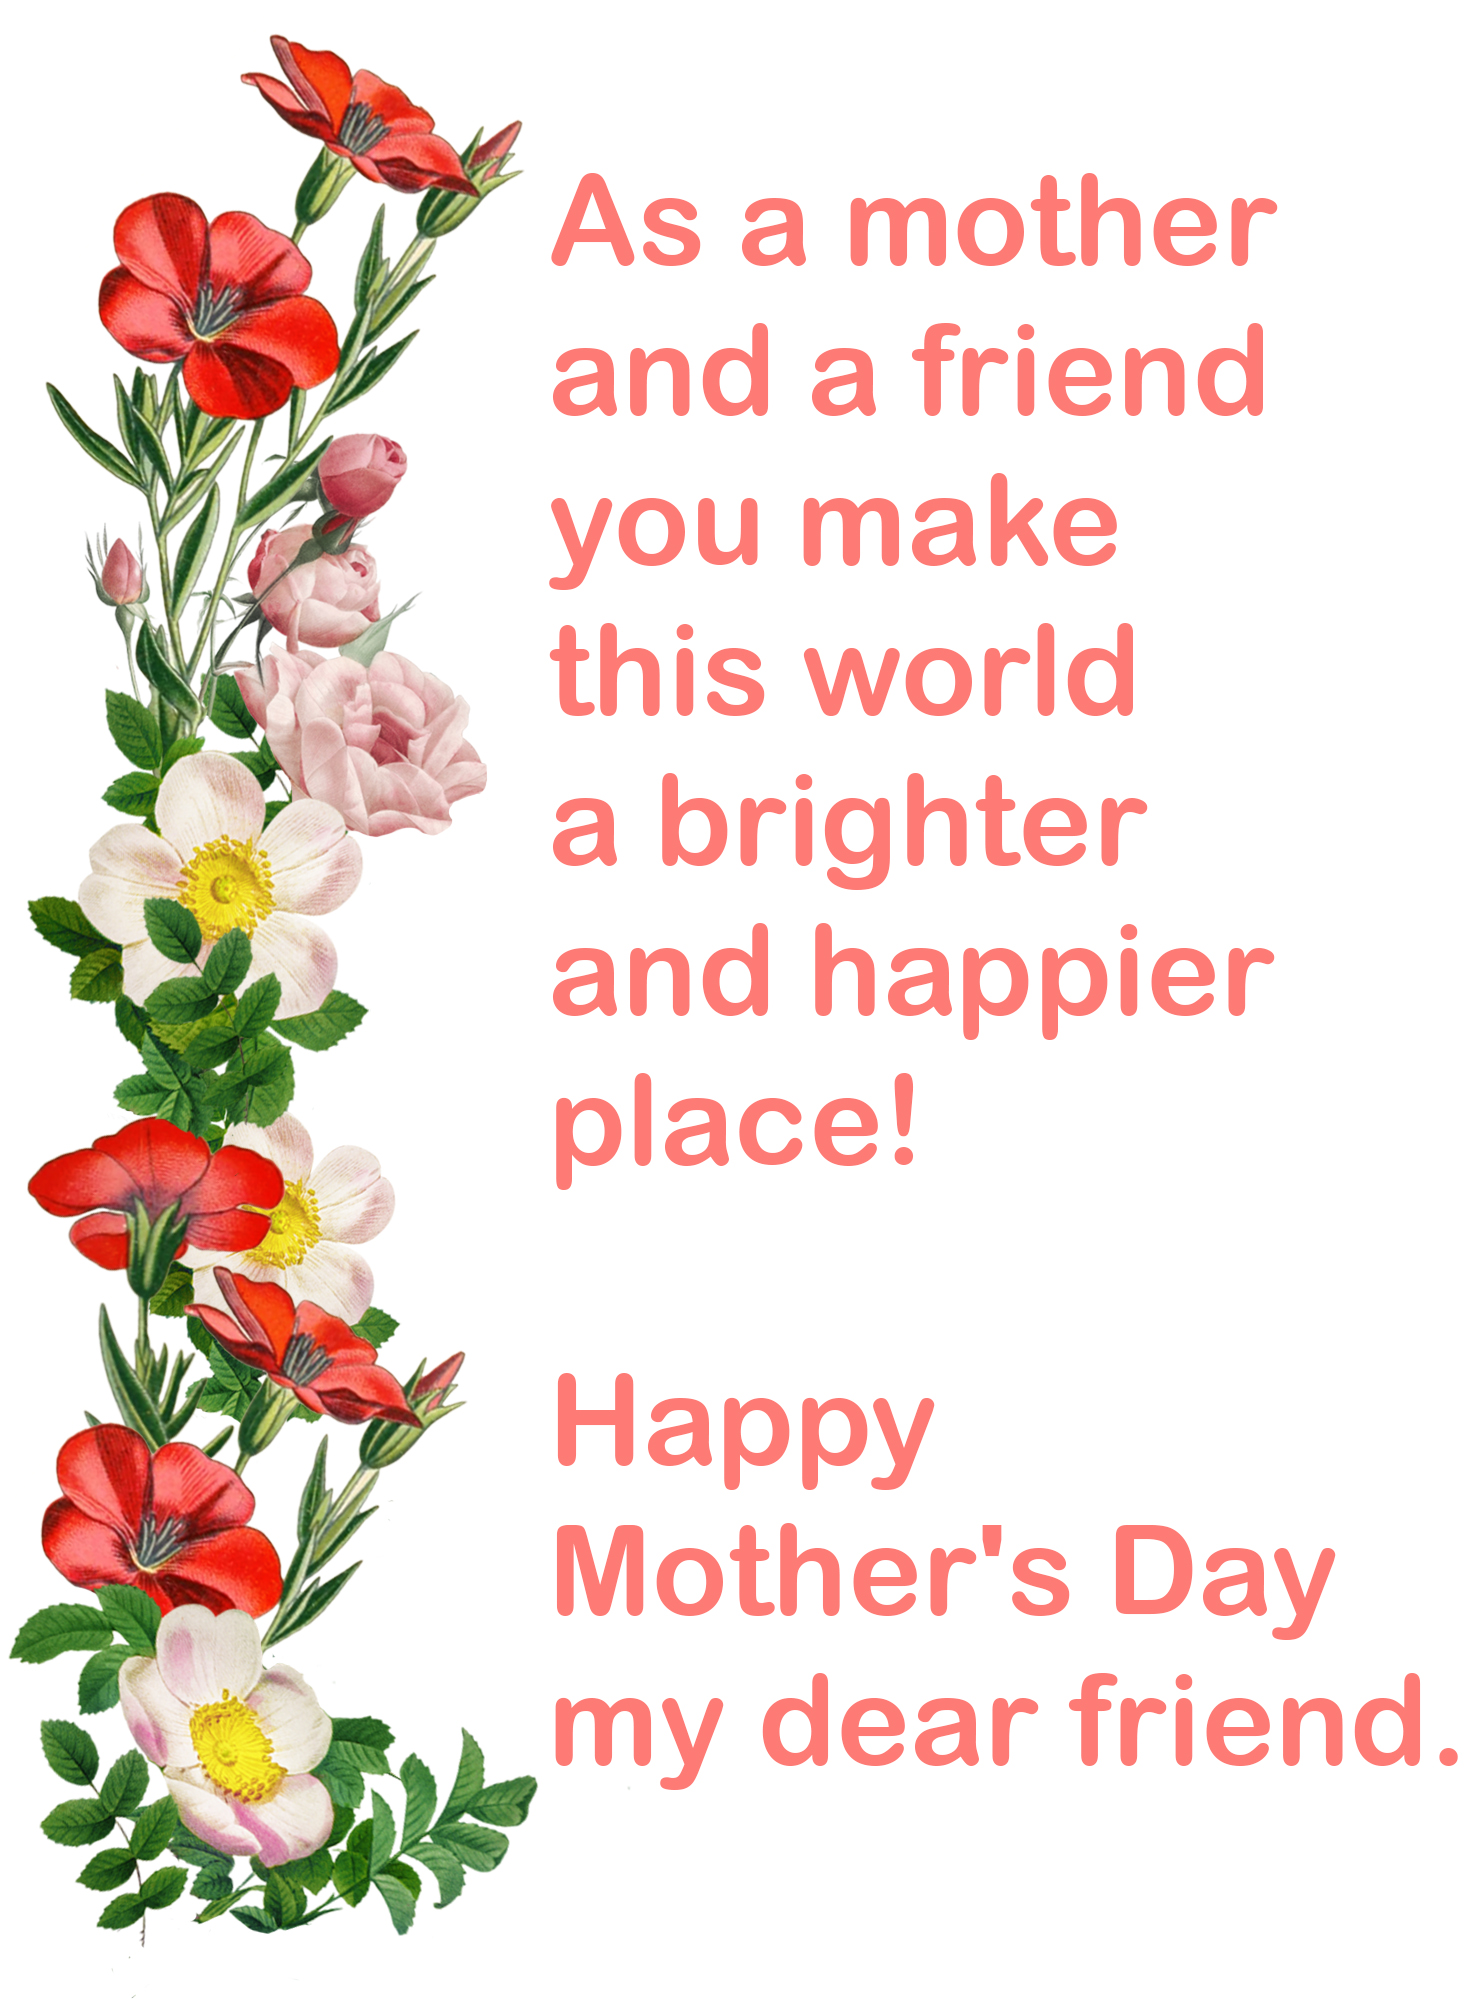 happy Mother's day friend image